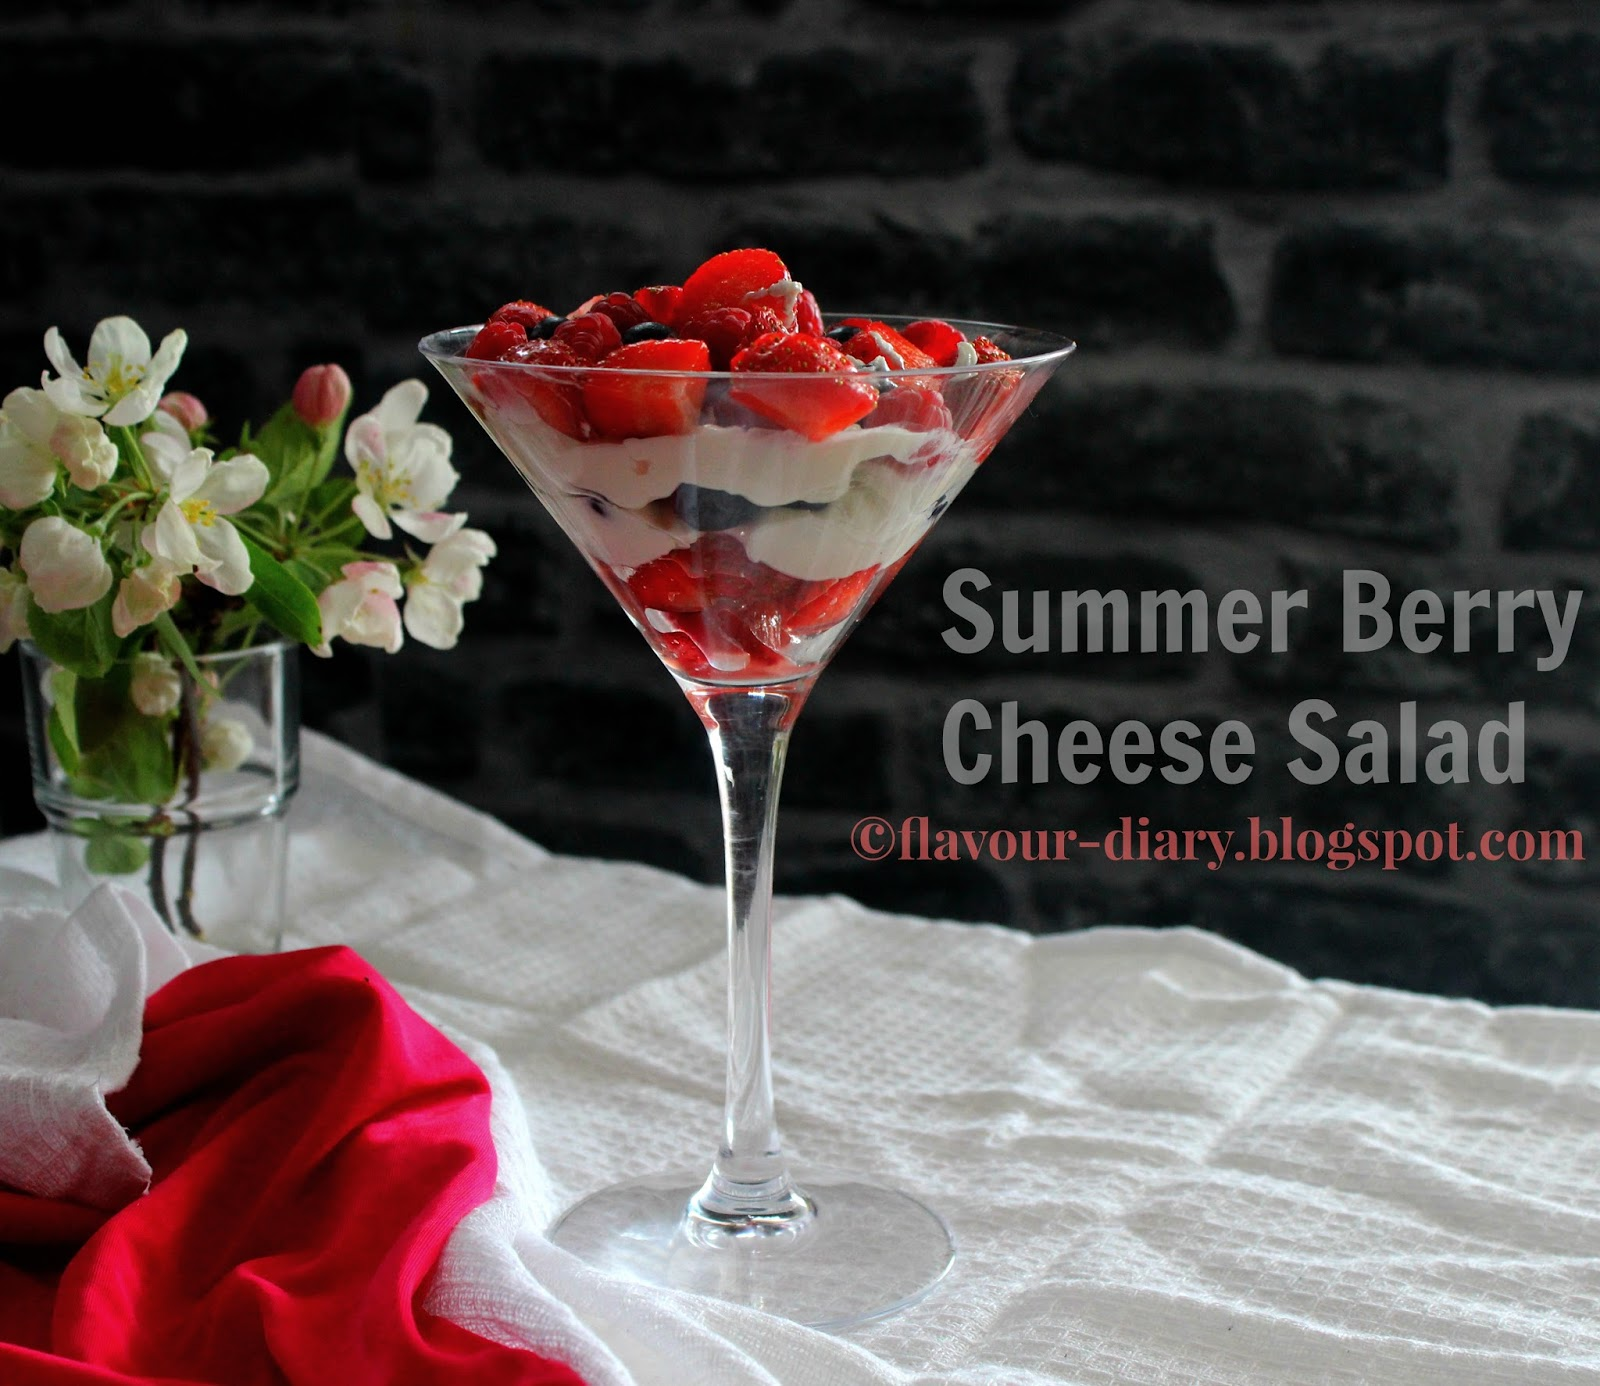 Summer Berry Cheese cake salad recipe